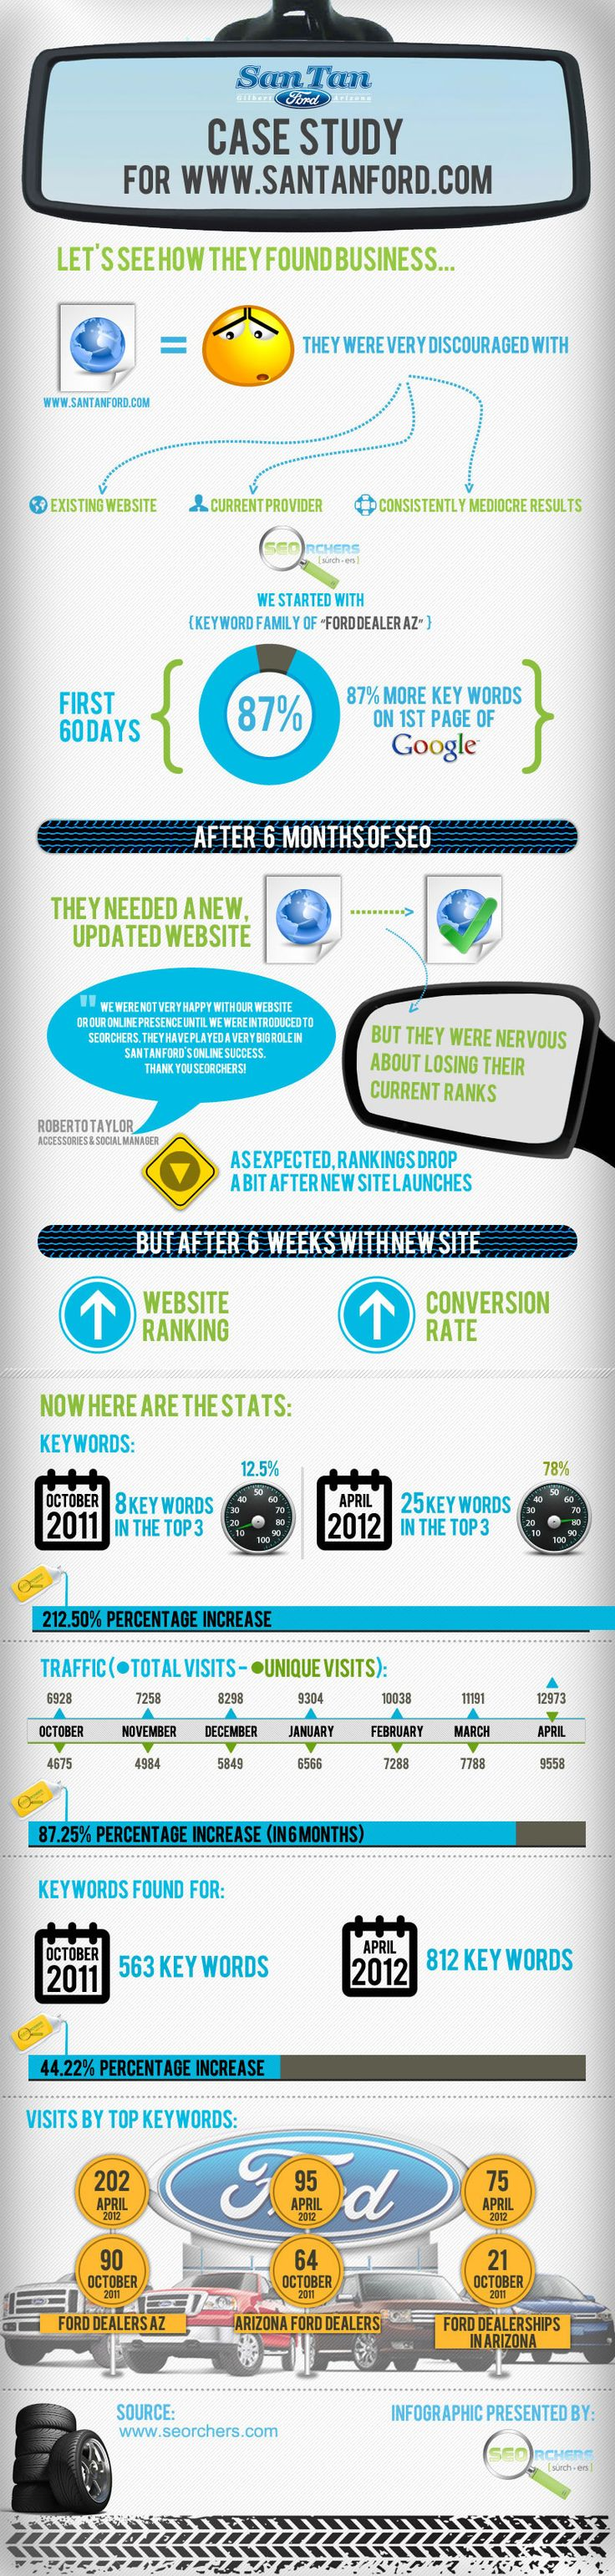 Infographic: SEO Case Study for San Tan Ford